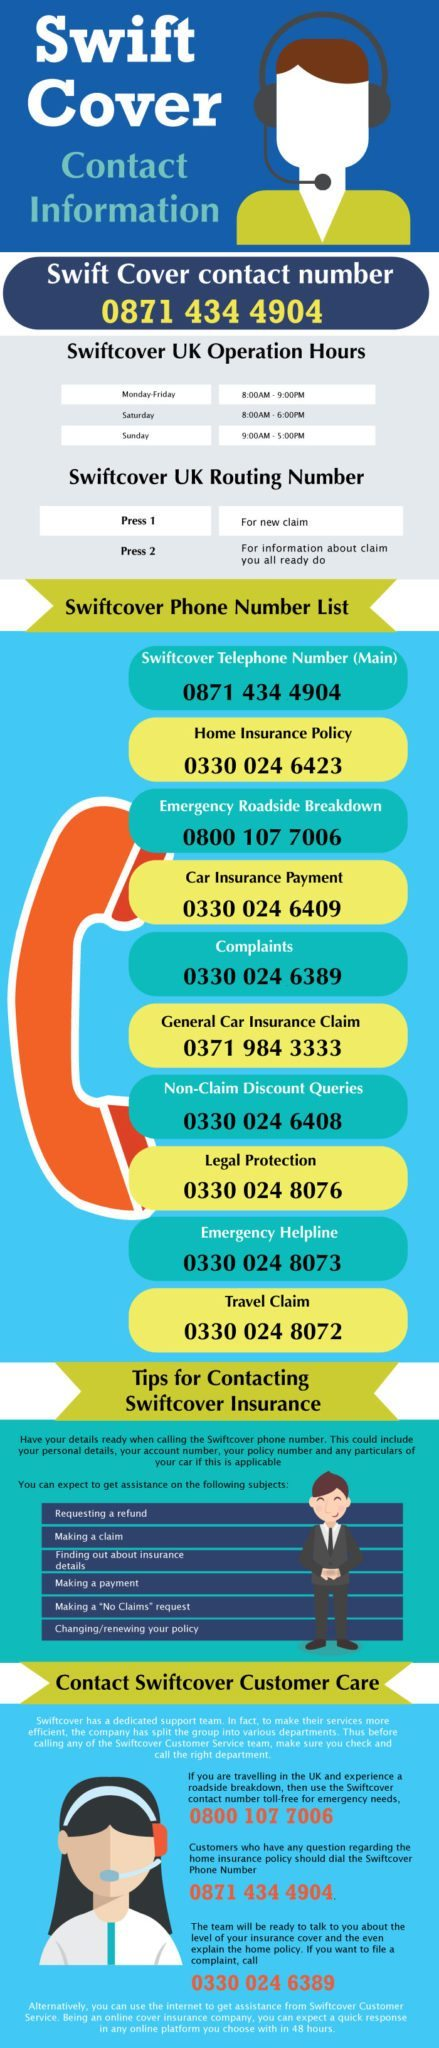 Swift cover telephone number